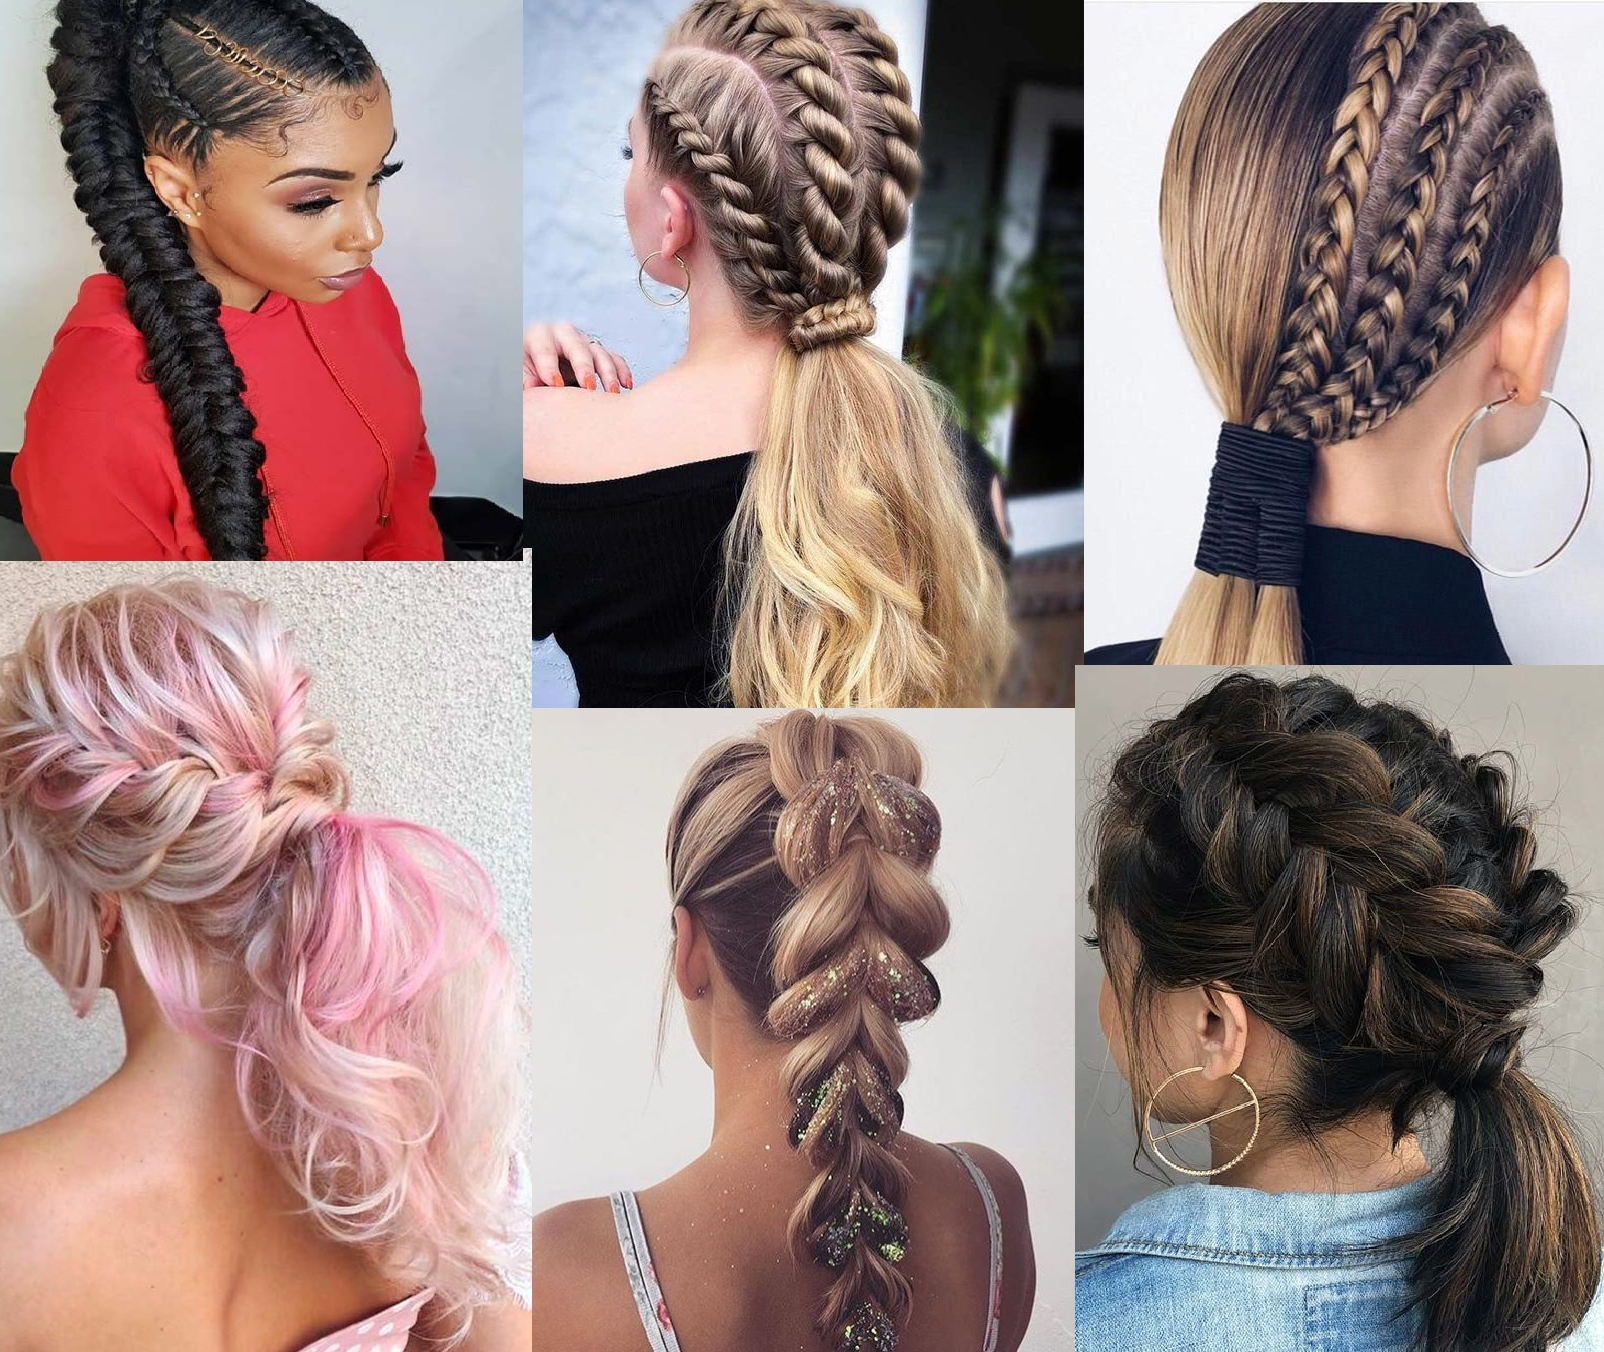 Well Known Ponytail Braid Hairstyles For Braided Ponytail Hairstyles You Must Try! (View 5 of 20)